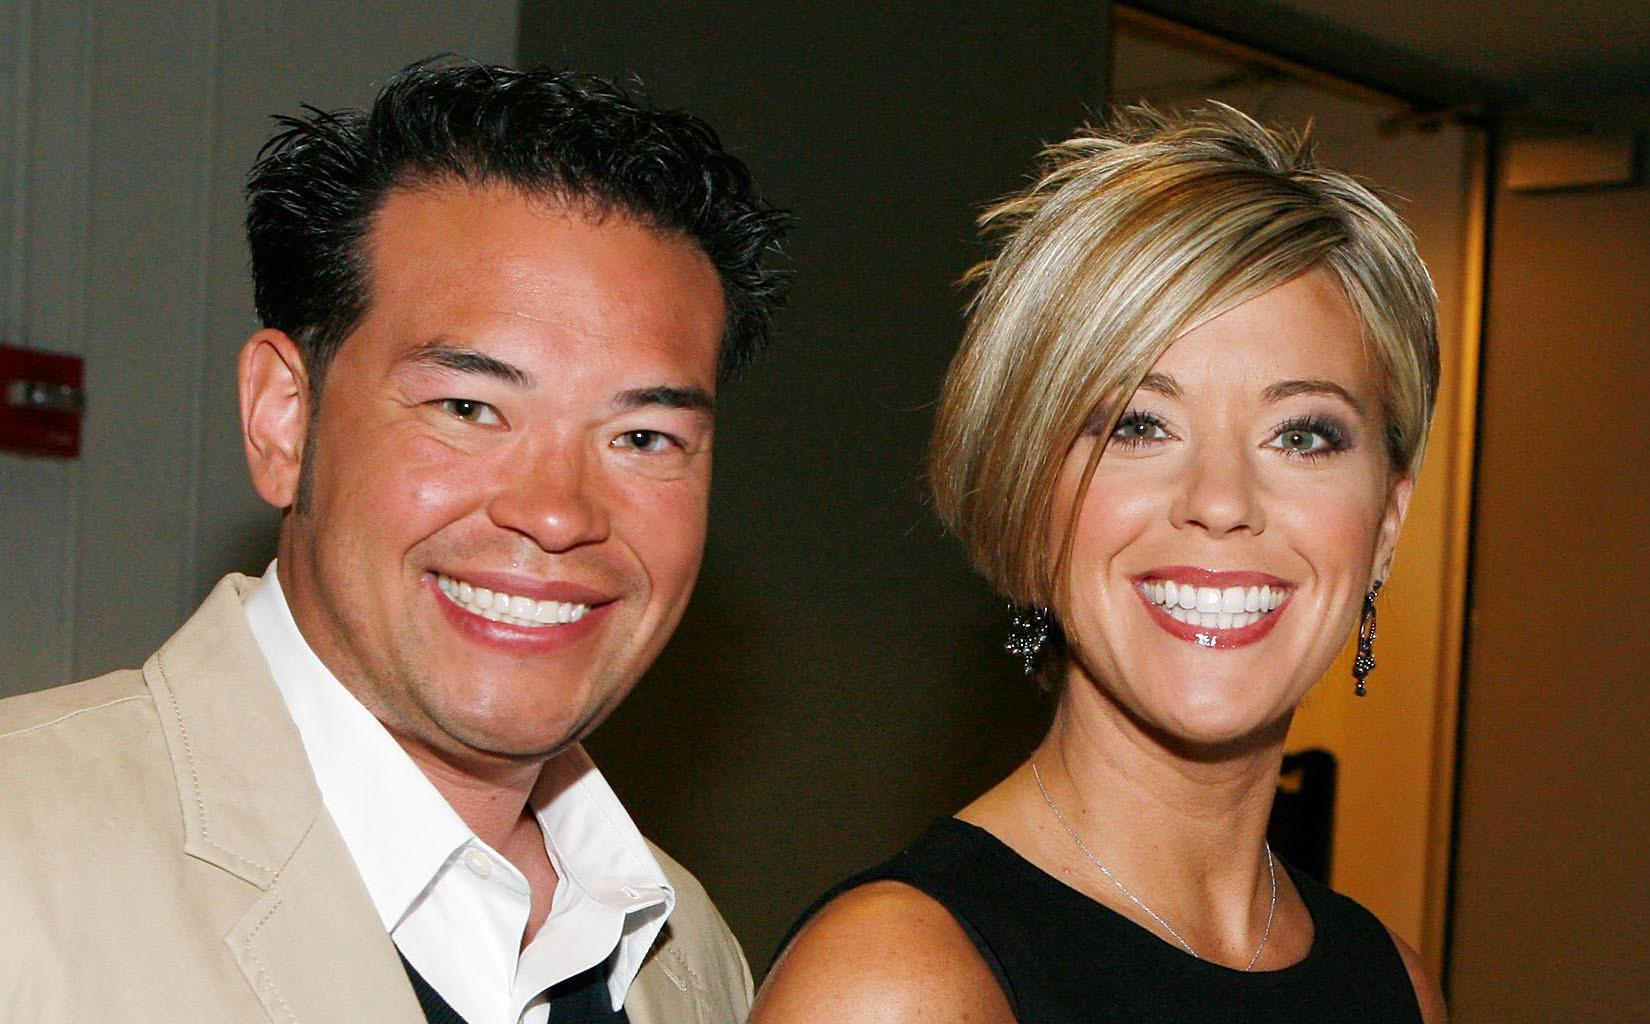 Jon Gosselin Says He's 'Furious' Kate Dragged Their Kids On TV Again After Judge Ruled It Was Not 'In Their Best Interest!'